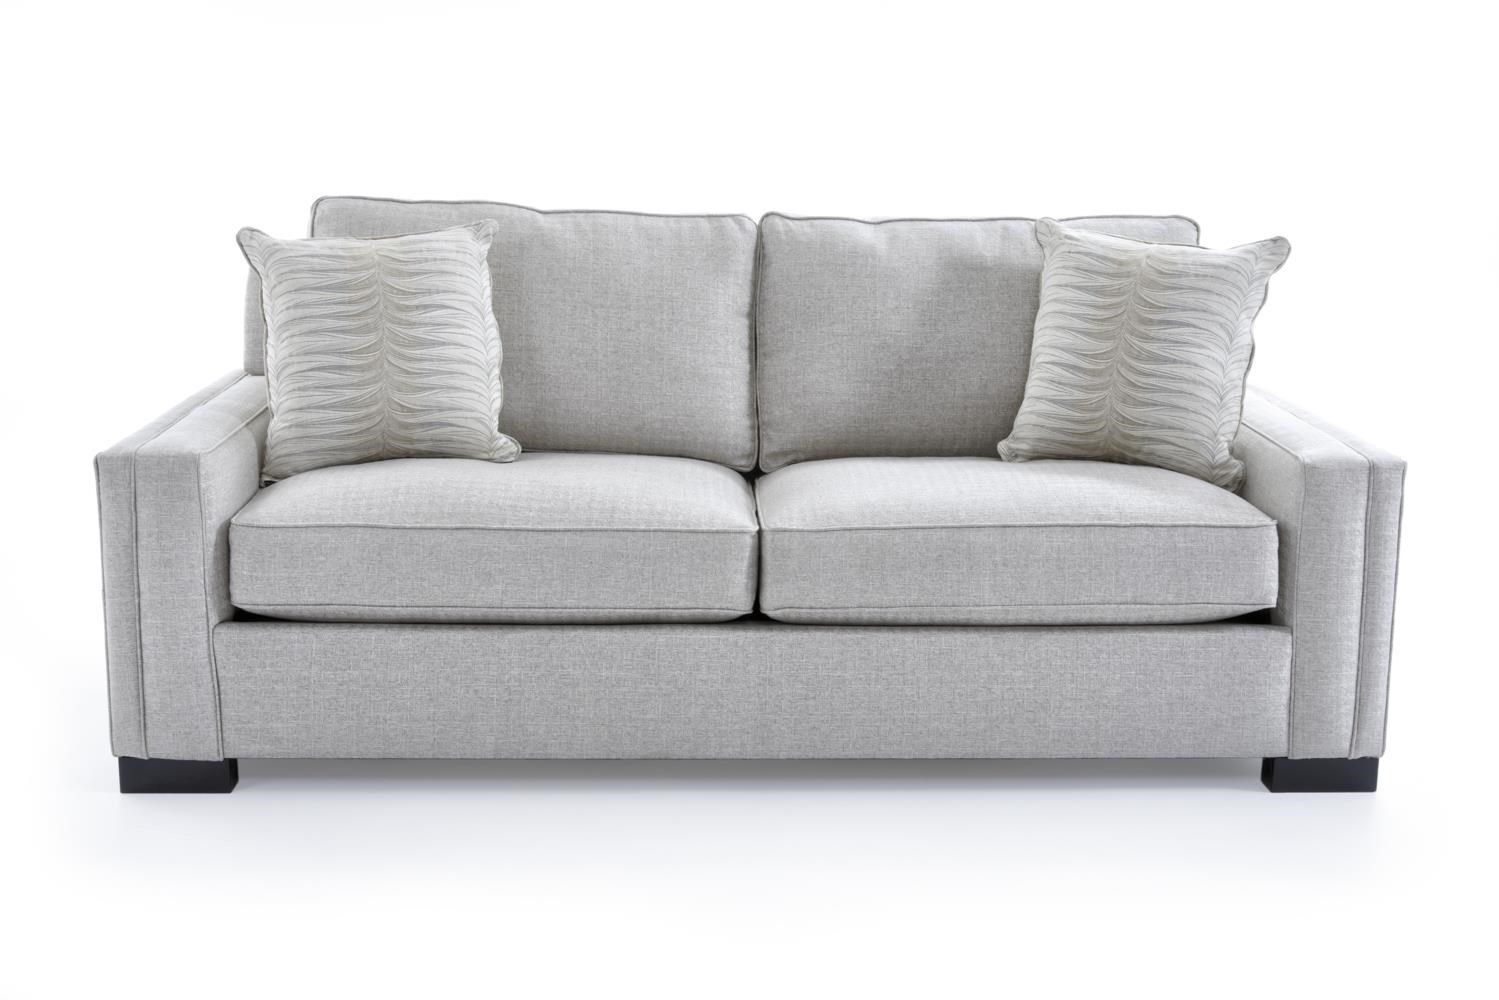 Broyhill Furniture RoccoApartment Sofa ...